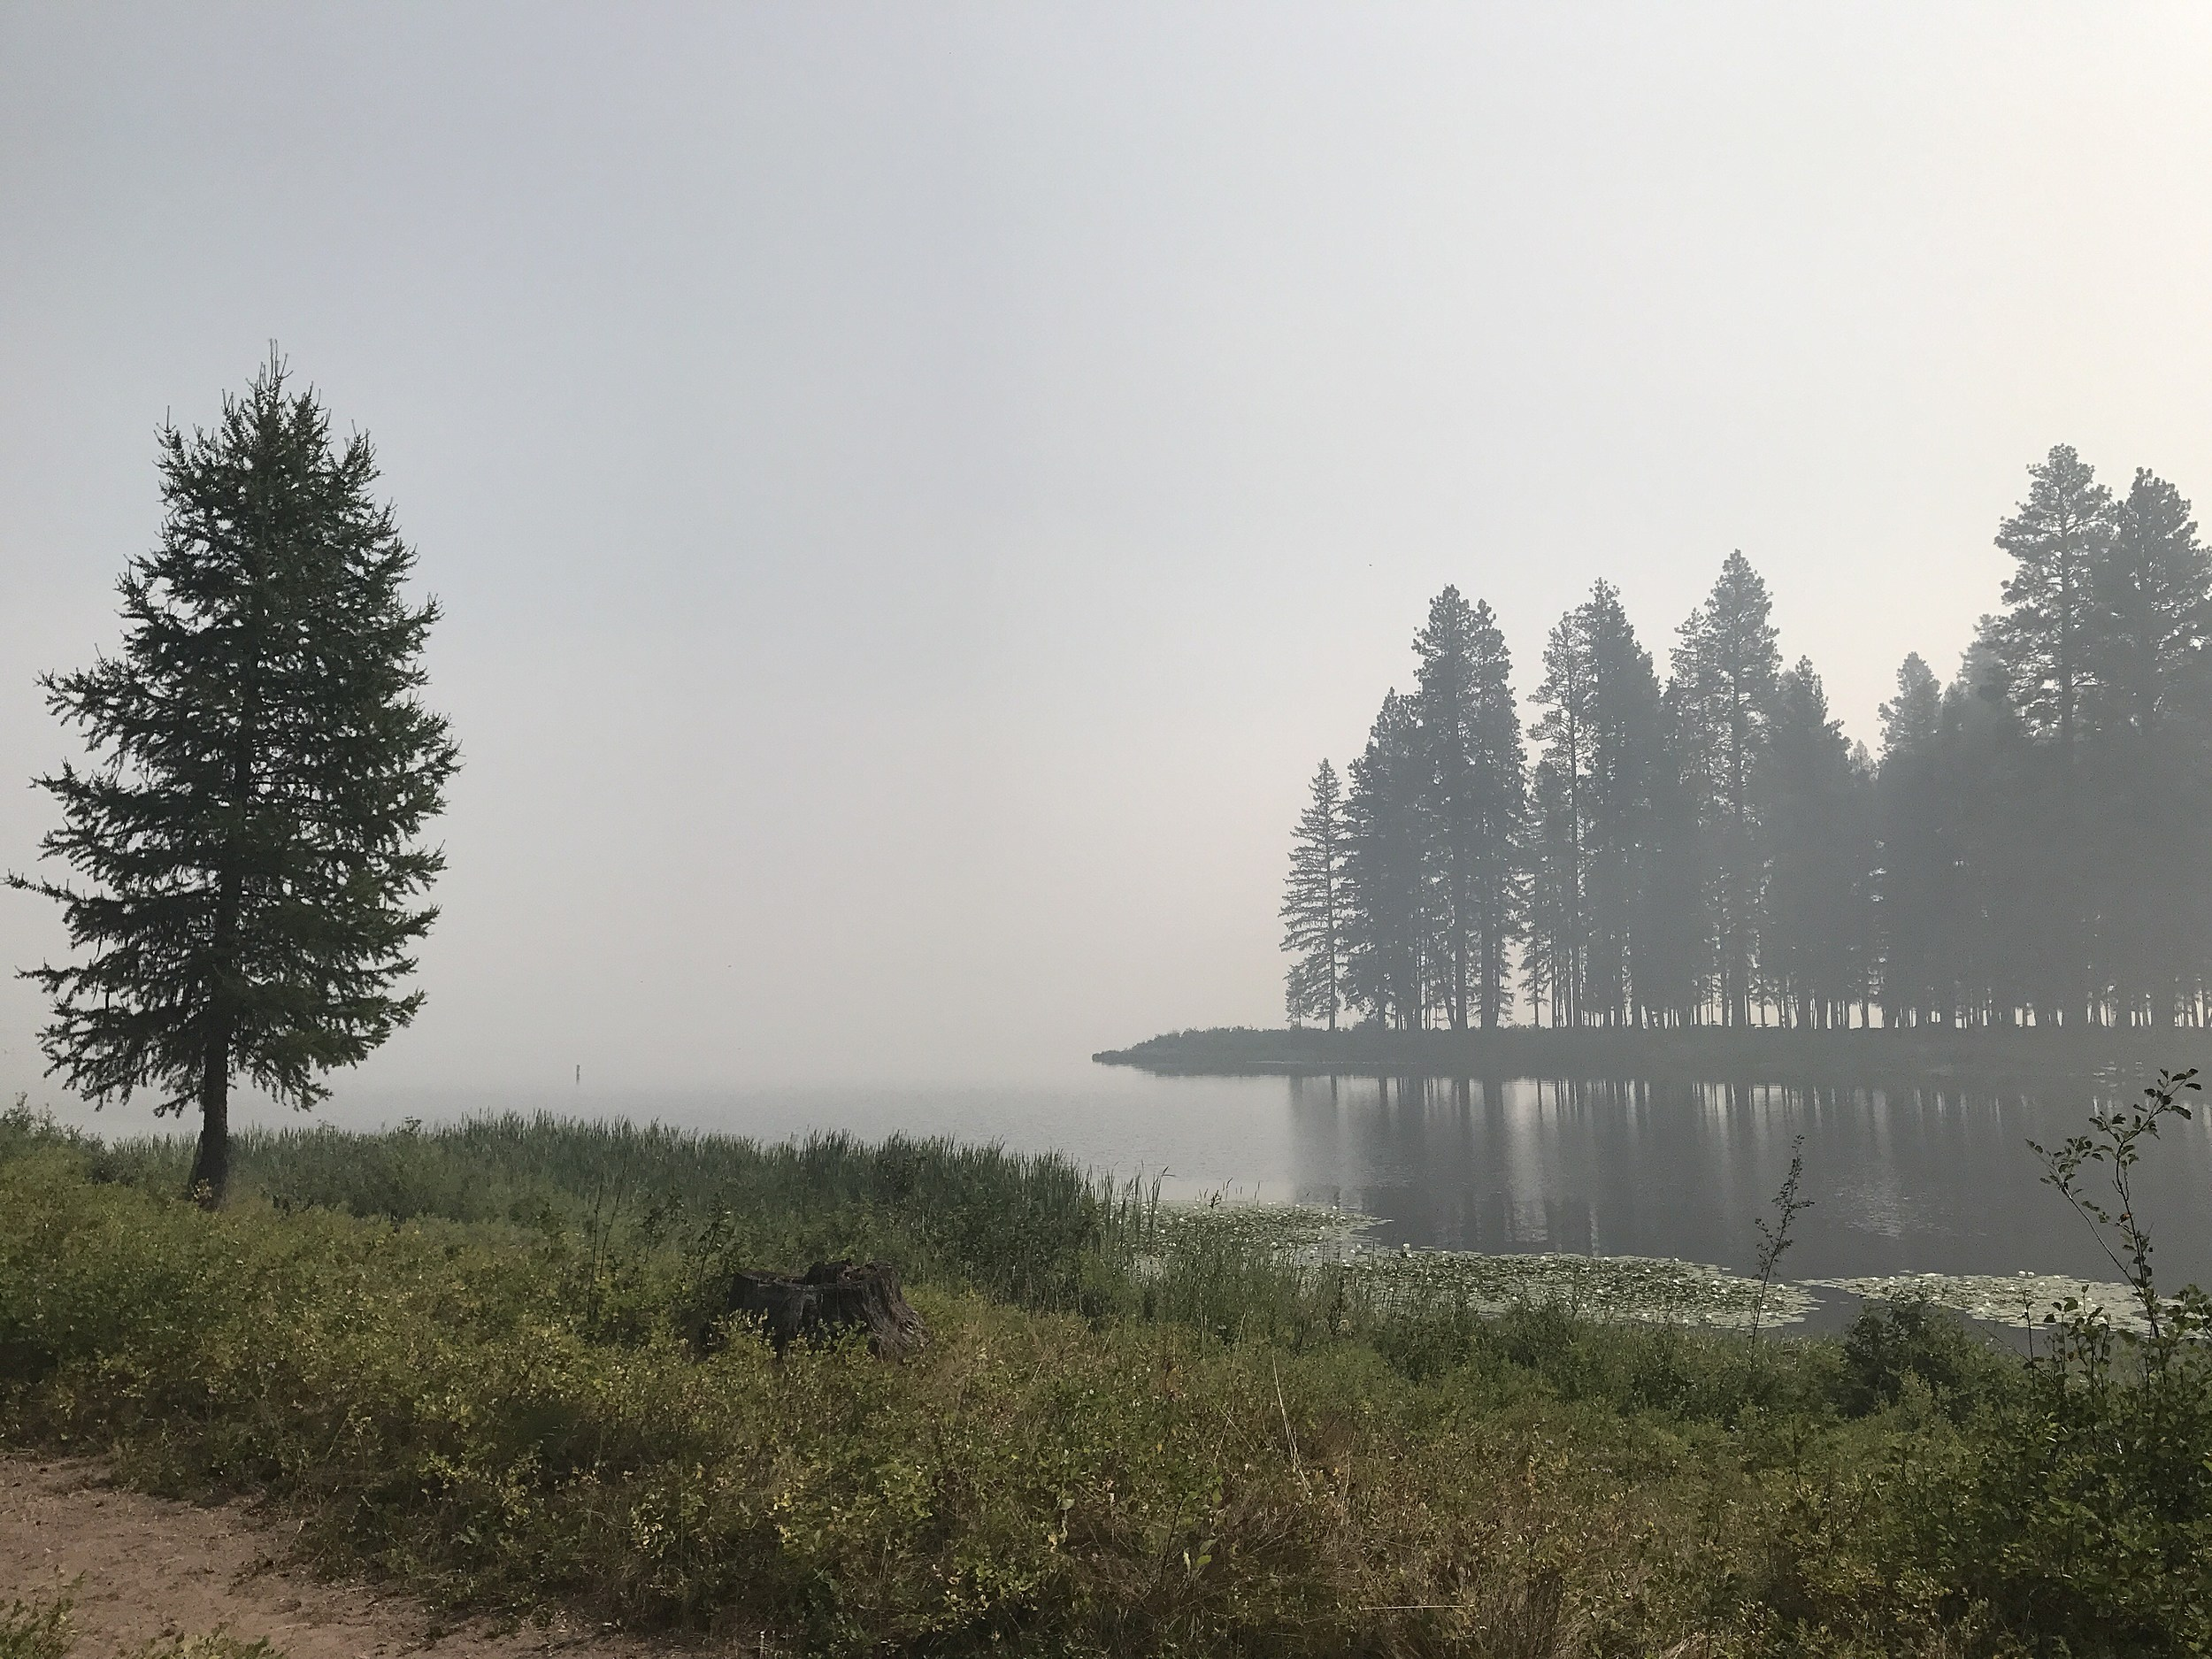 Evacuation warning issued for Seeley Lake residents